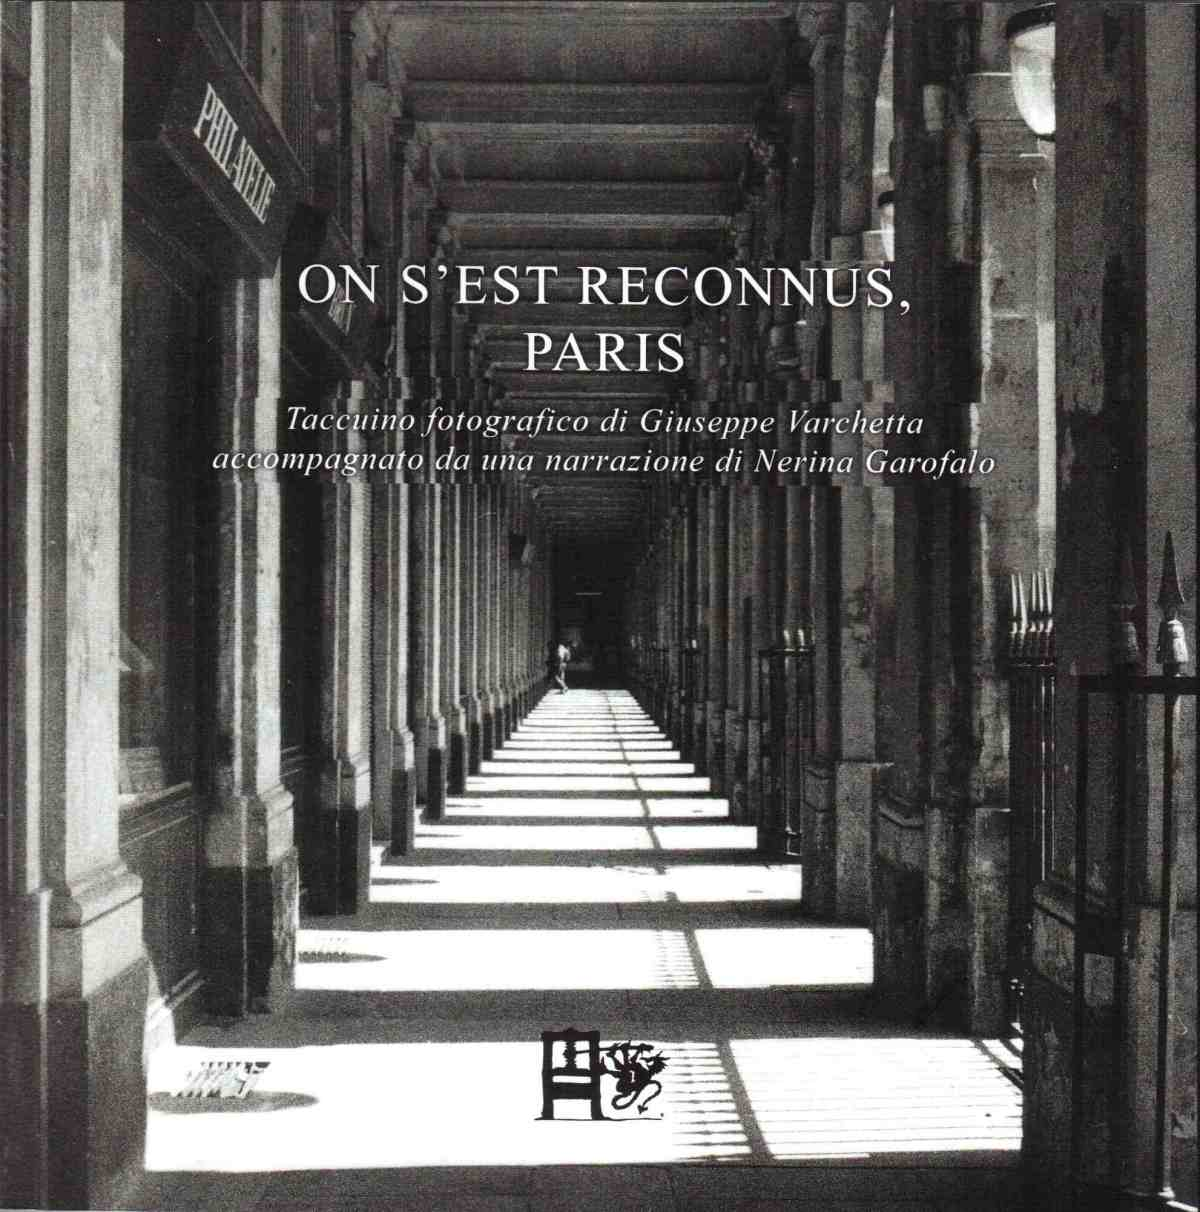 """On s'est reconnus, Paris""."